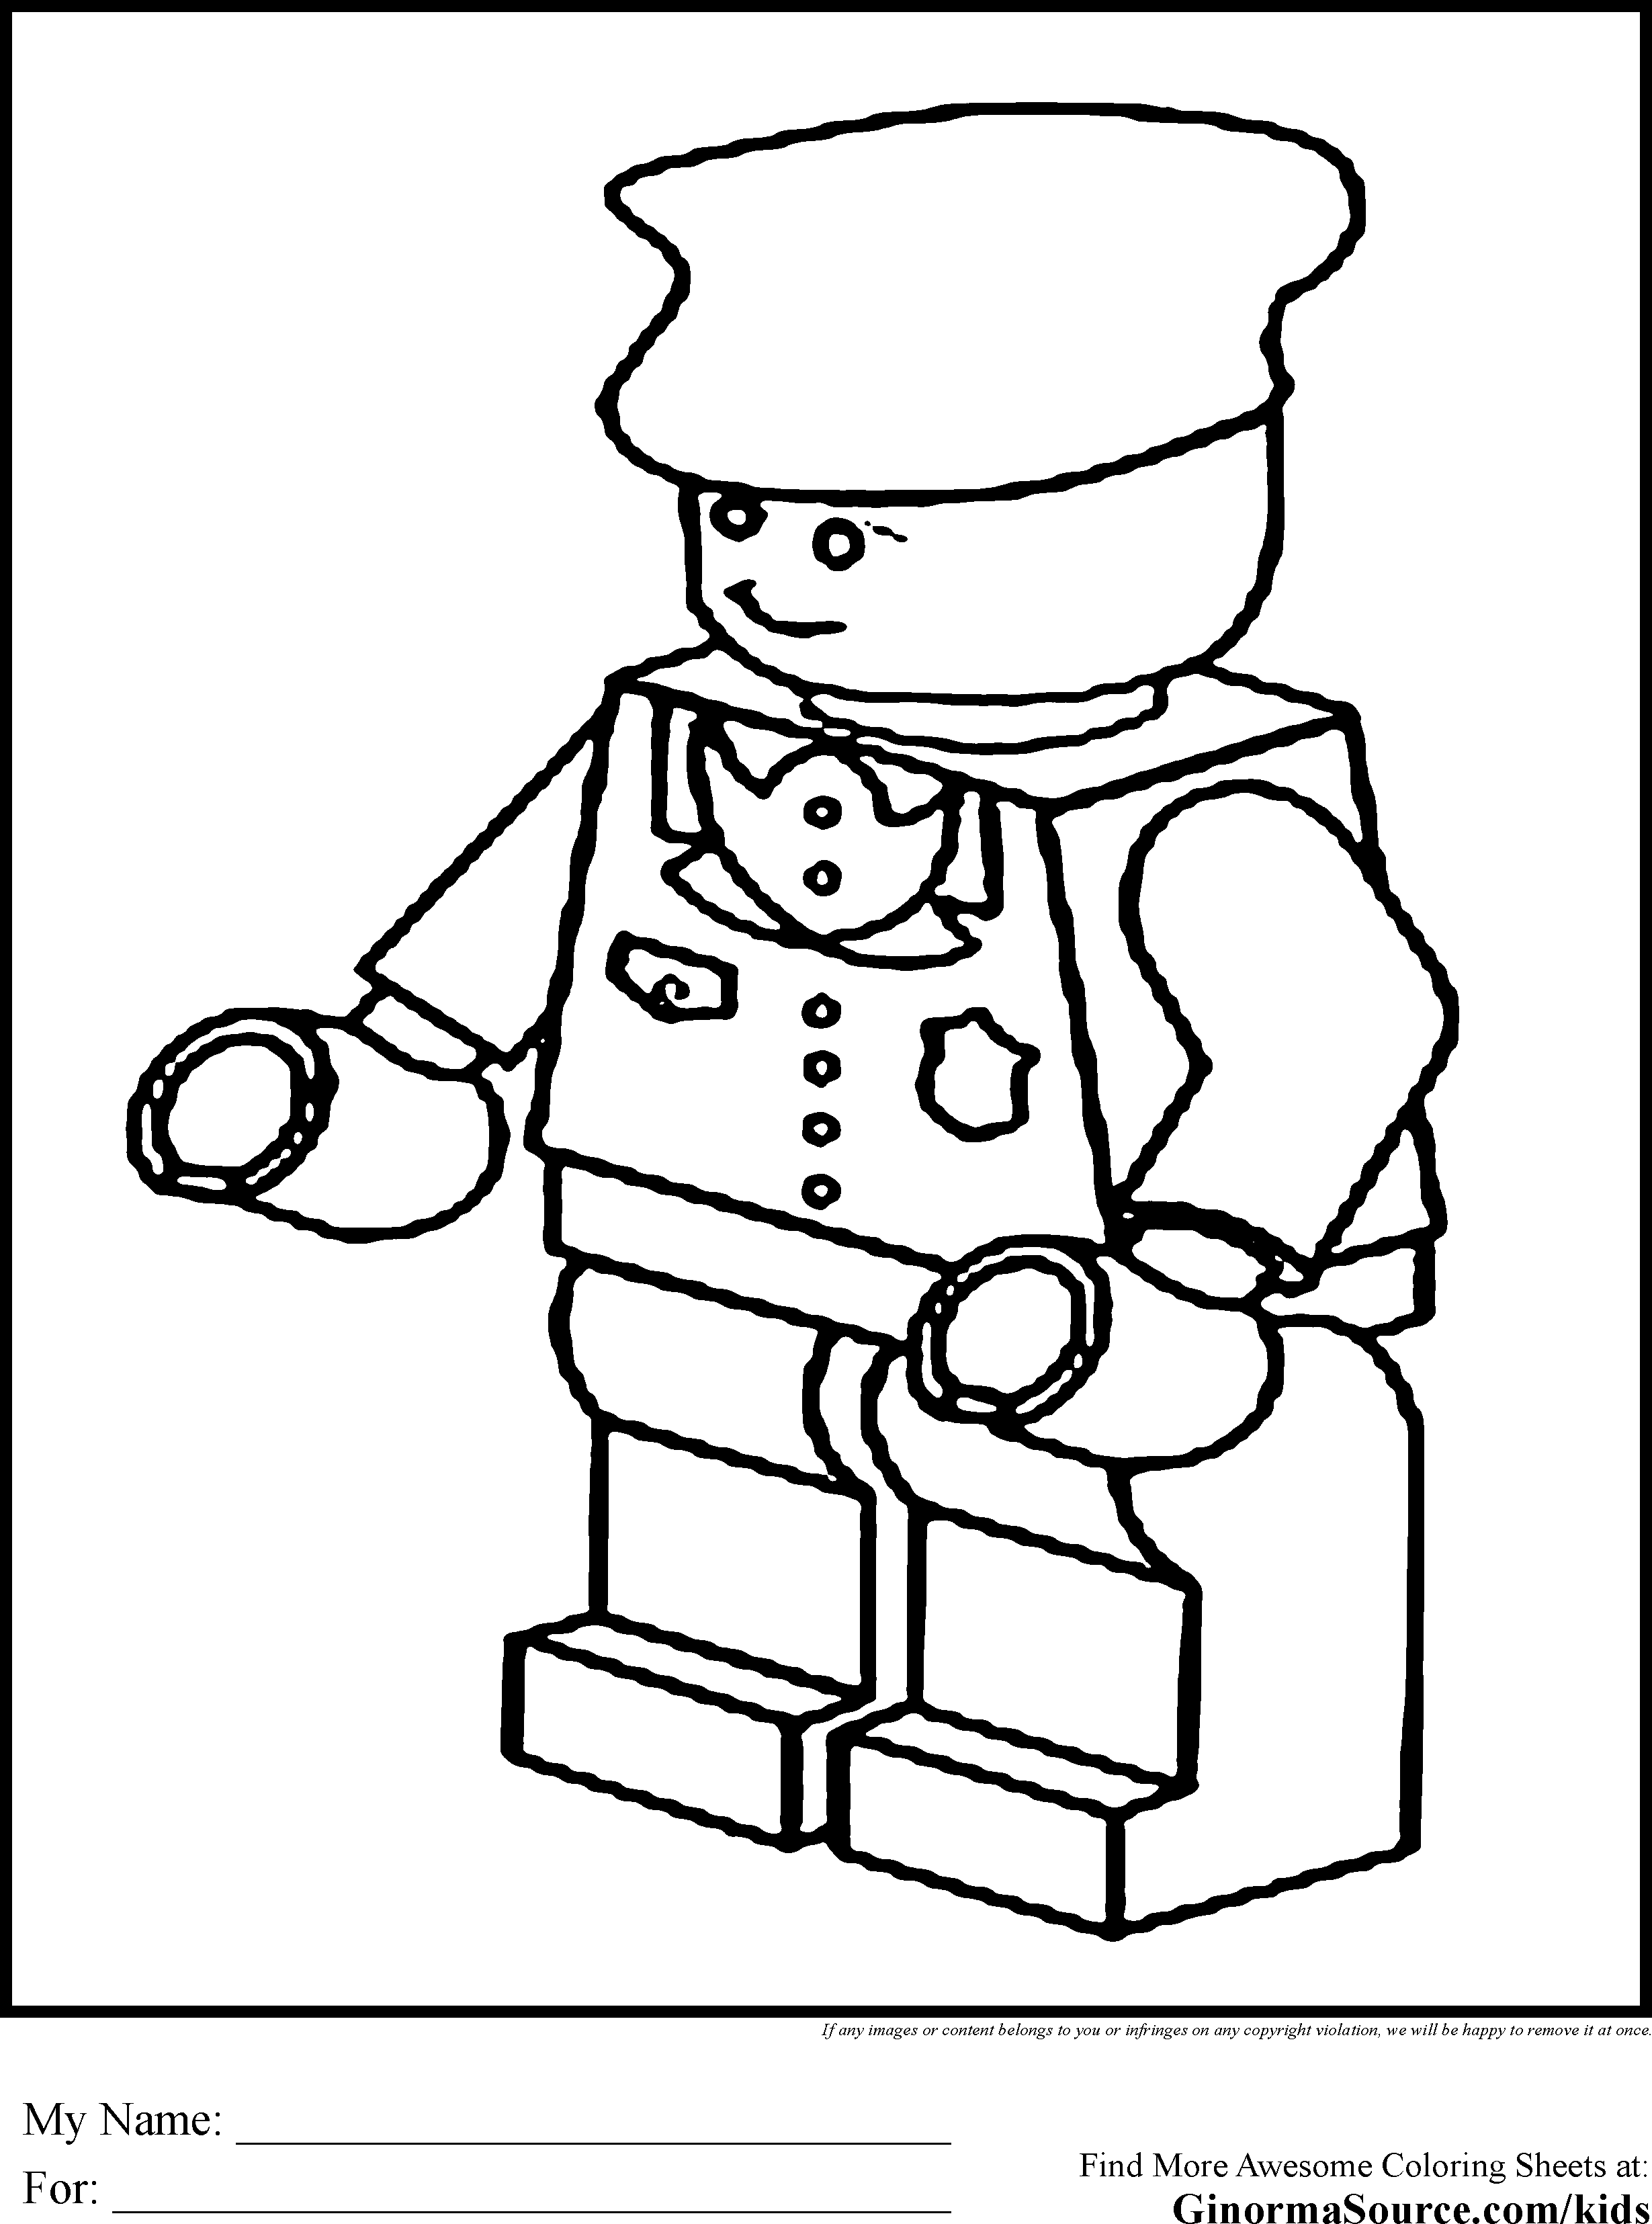 Free lego coloring book printable - Lego Colouring Pages Printable High Quality Coloring Pages